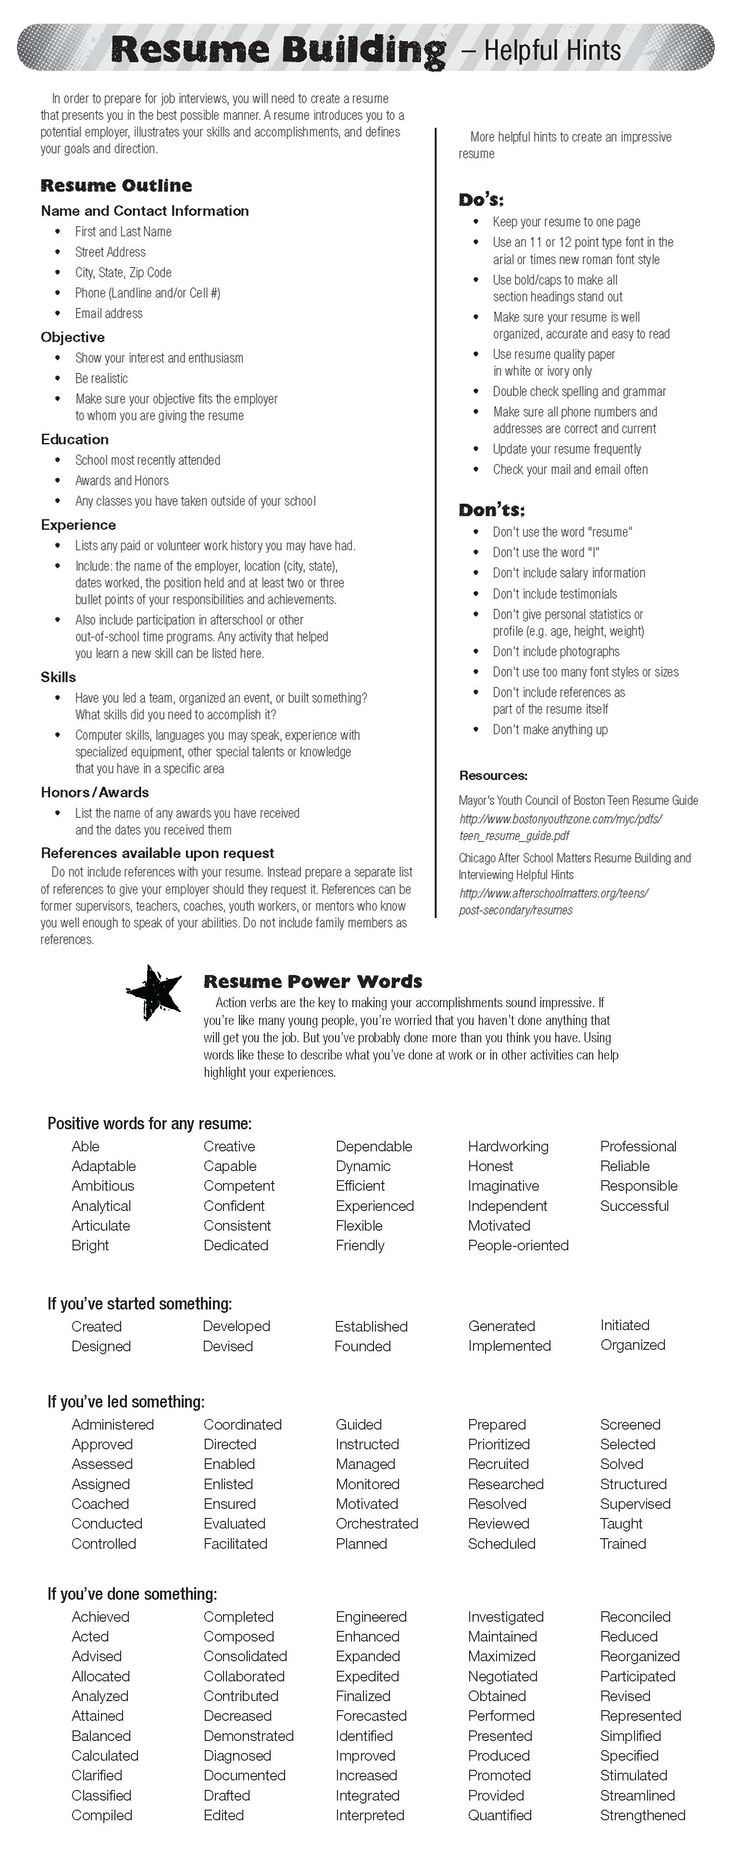 Opposenewapstandardsus  Sweet  Ideas About Resume On Pinterest  Cv Format Resume Cv And  With Lovable  Ideas About Resume On Pinterest  Cv Format Resume Cv And Resume Templates With Cute Gpa On Resume Also Basic Resume Format In Addition Teacher Resume Examples And Create Resume Free As Well As Words To Use In A Resume Additionally Free Resume Templates For Mac From Pinterestcom With Opposenewapstandardsus  Lovable  Ideas About Resume On Pinterest  Cv Format Resume Cv And  With Cute  Ideas About Resume On Pinterest  Cv Format Resume Cv And Resume Templates And Sweet Gpa On Resume Also Basic Resume Format In Addition Teacher Resume Examples From Pinterestcom